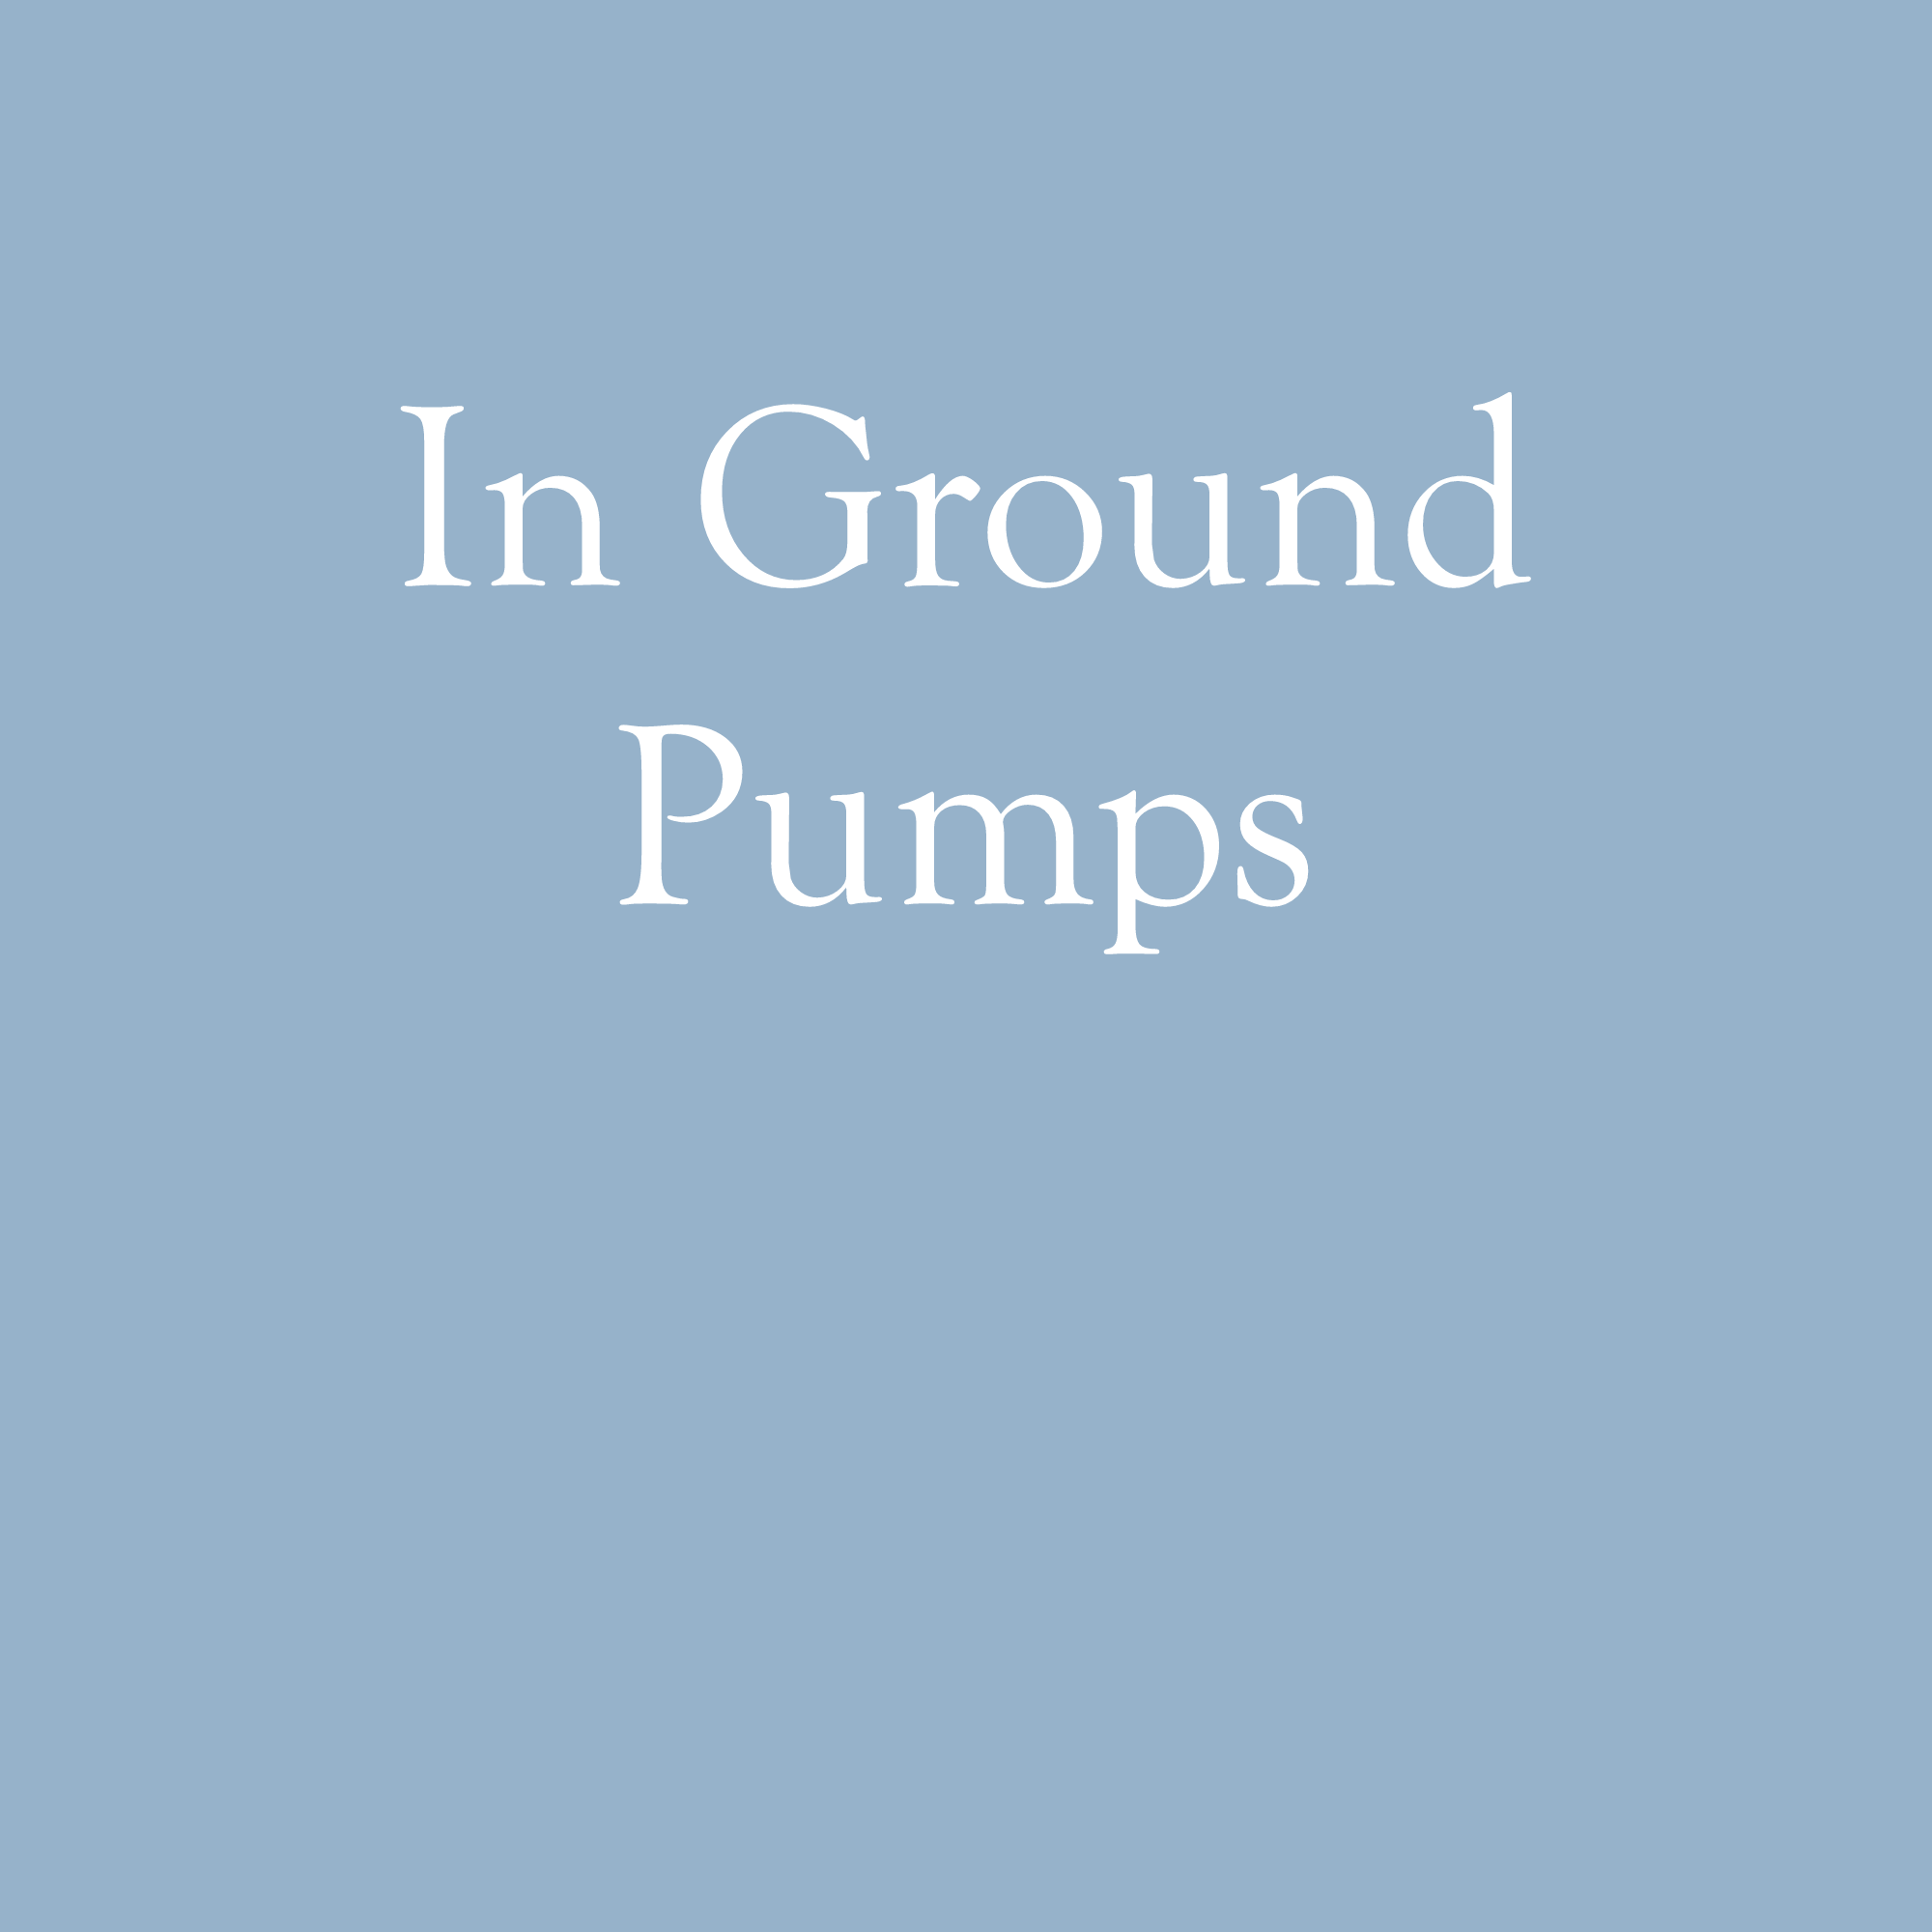 In Ground Pumps